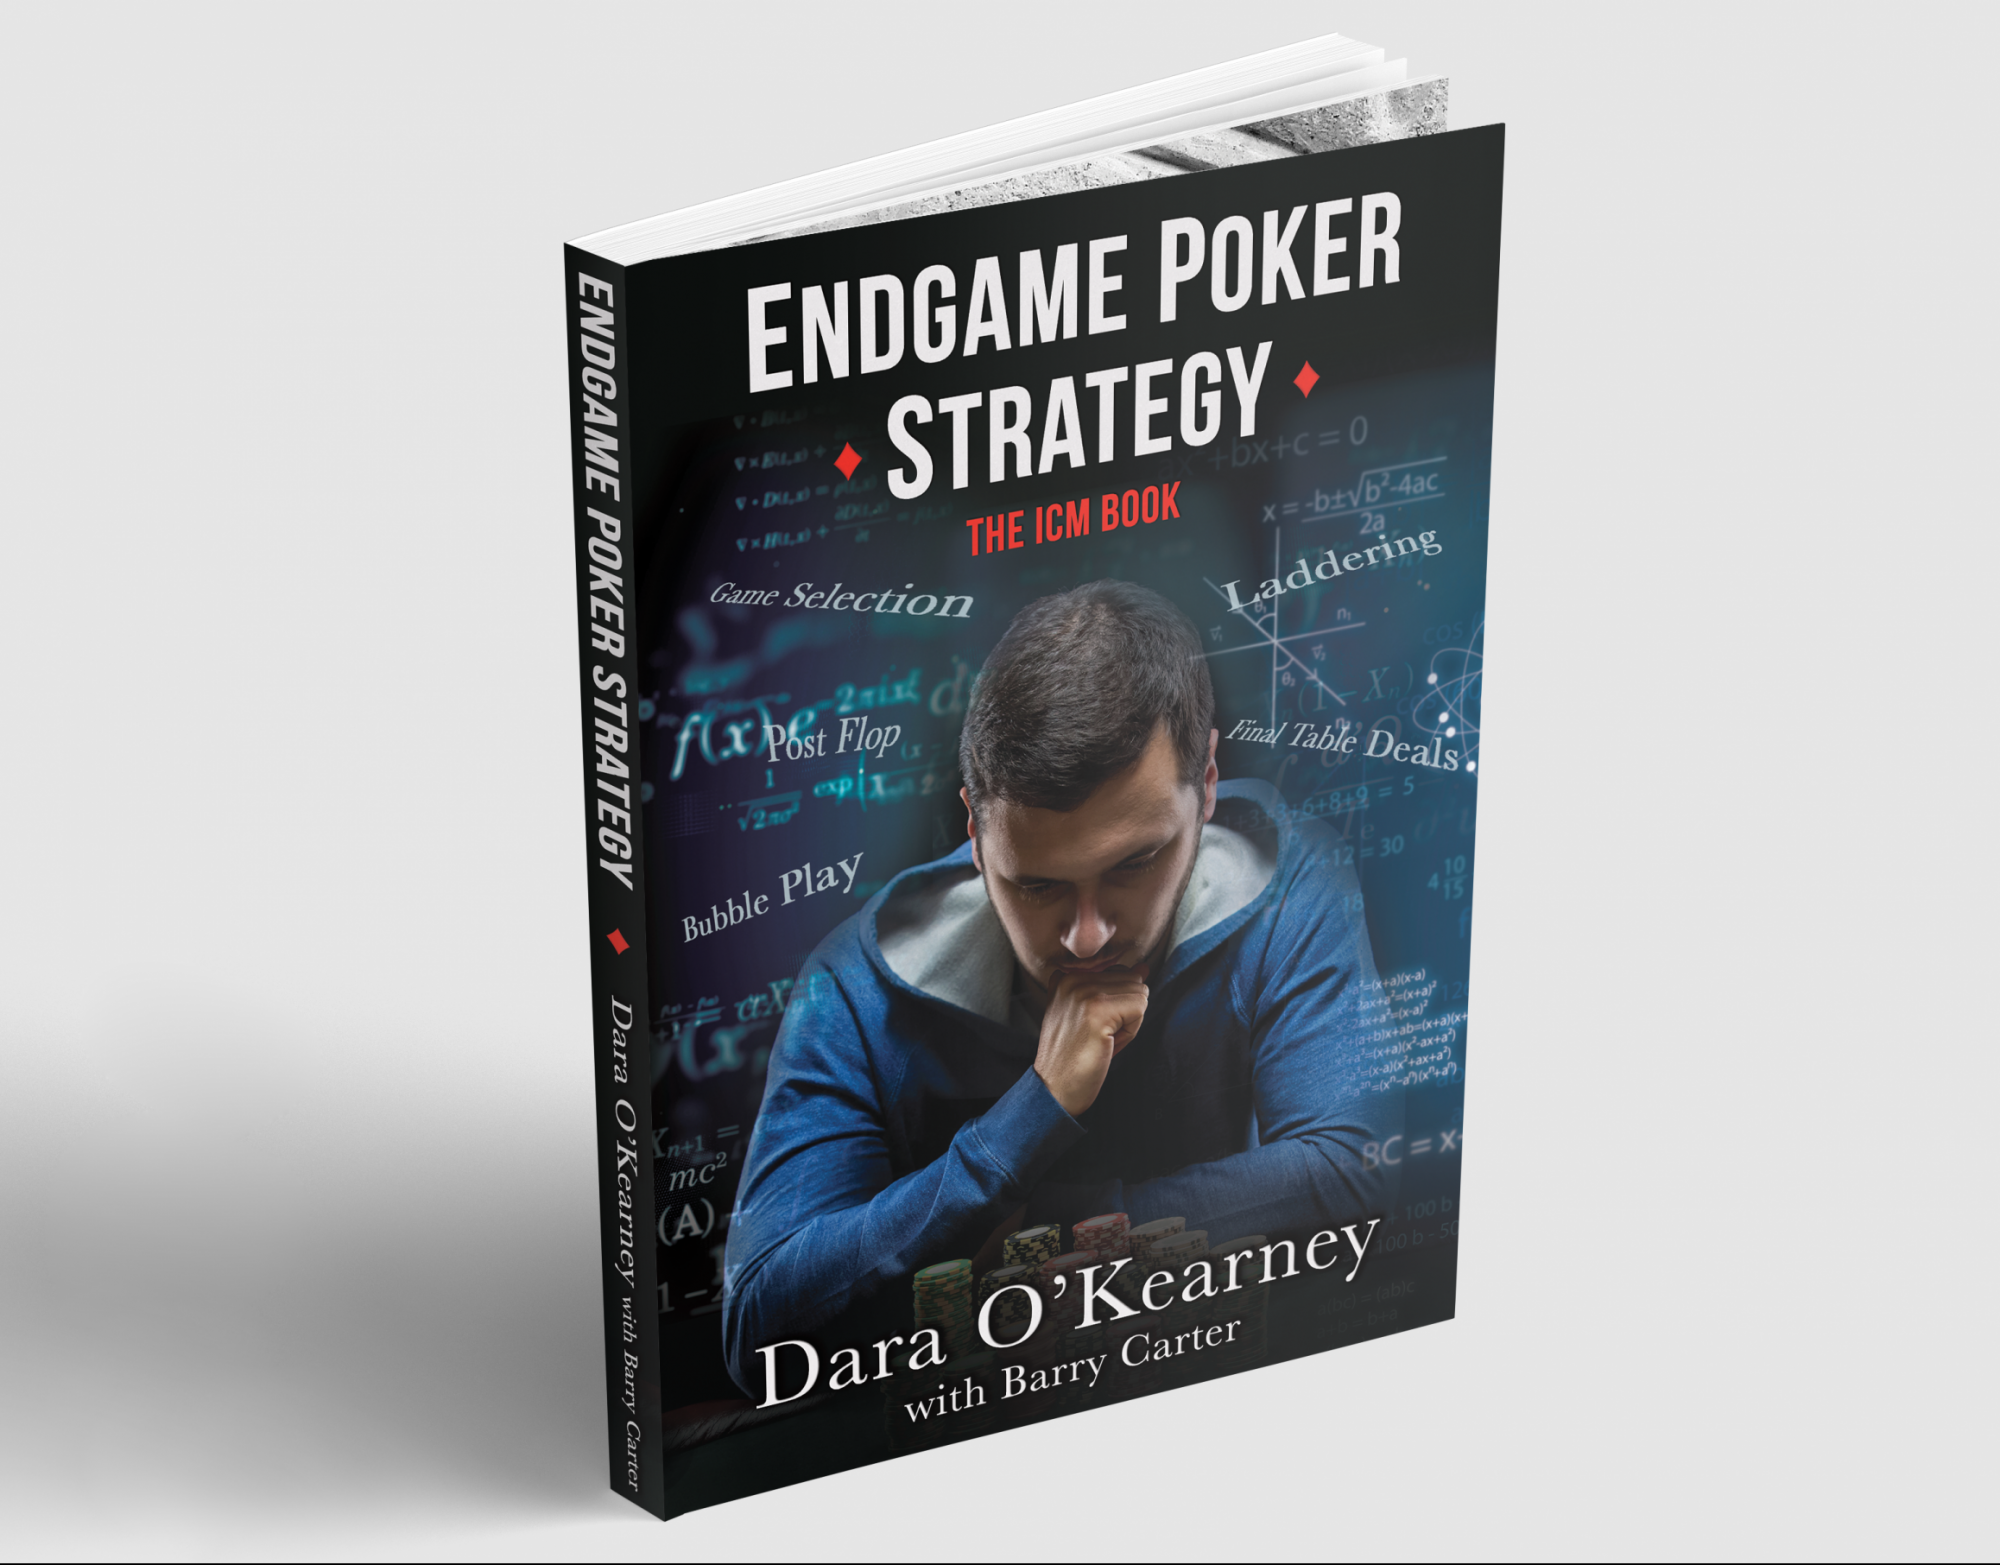 Endgame Poker Strategy book cover